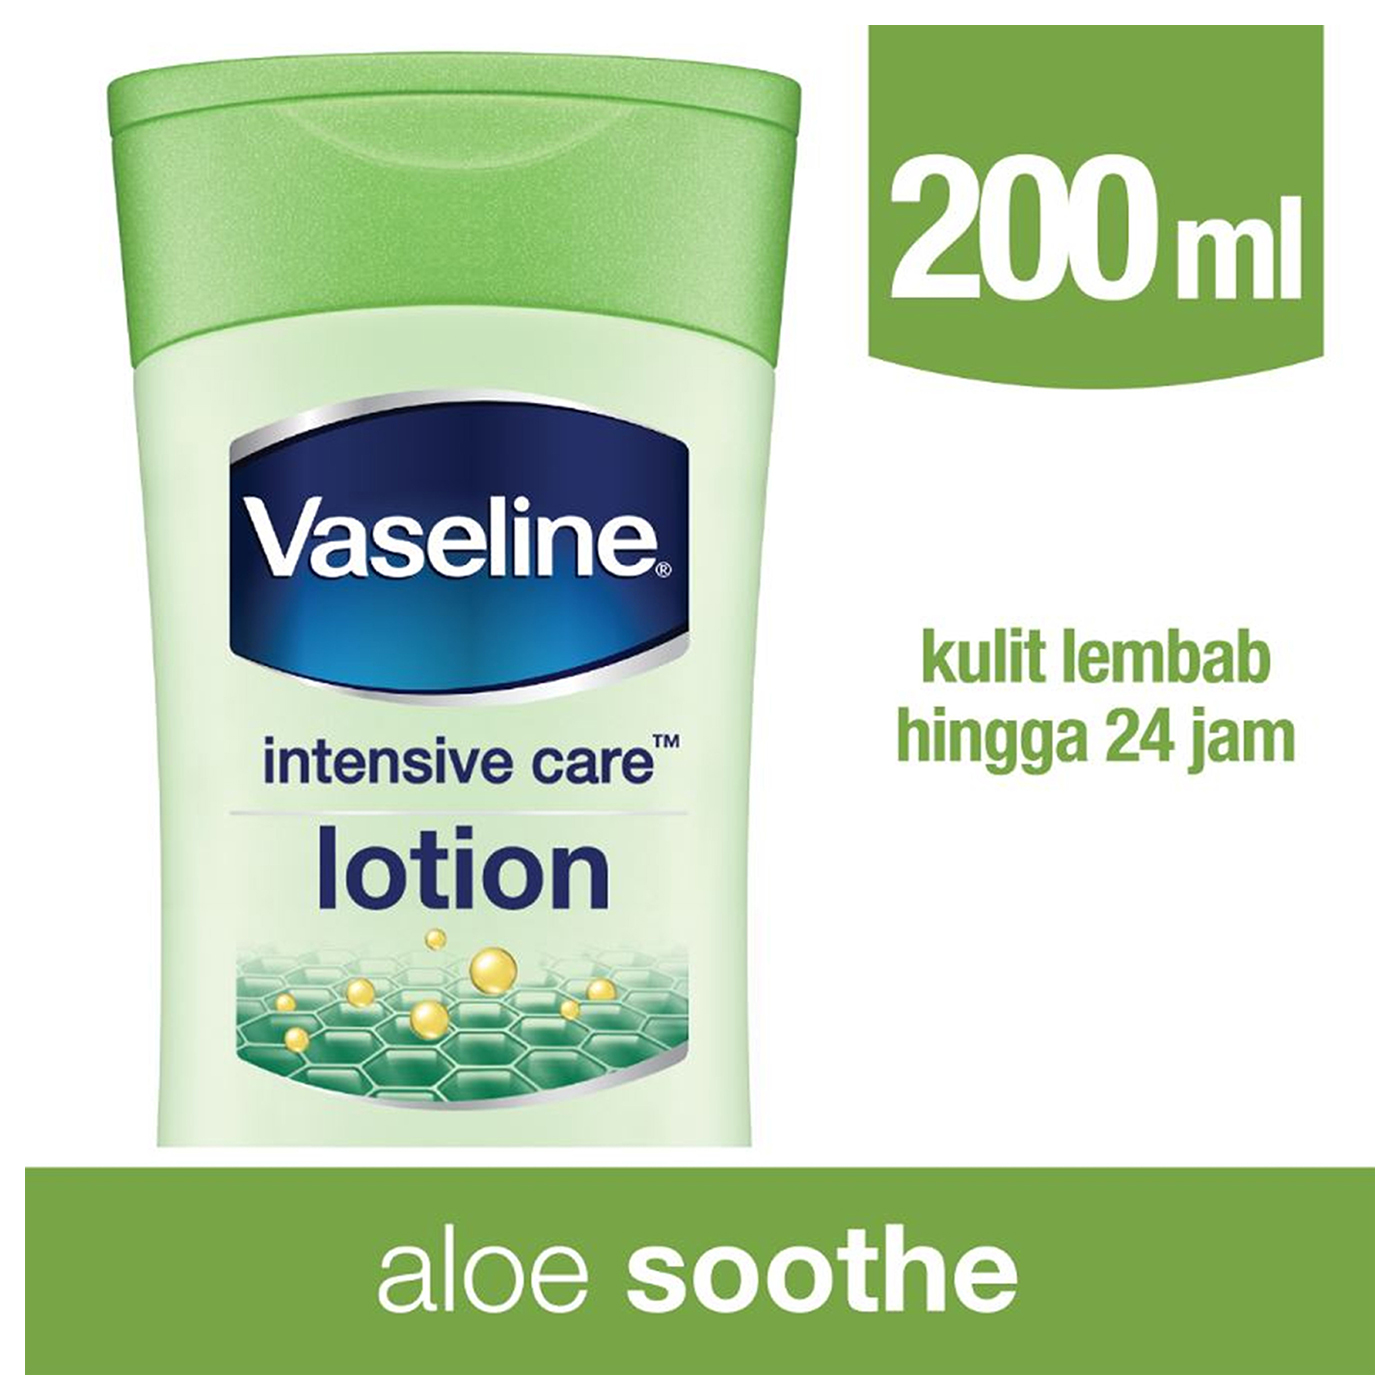 Vaseline Lotion Intensive Care Aloe Soothe 200ml